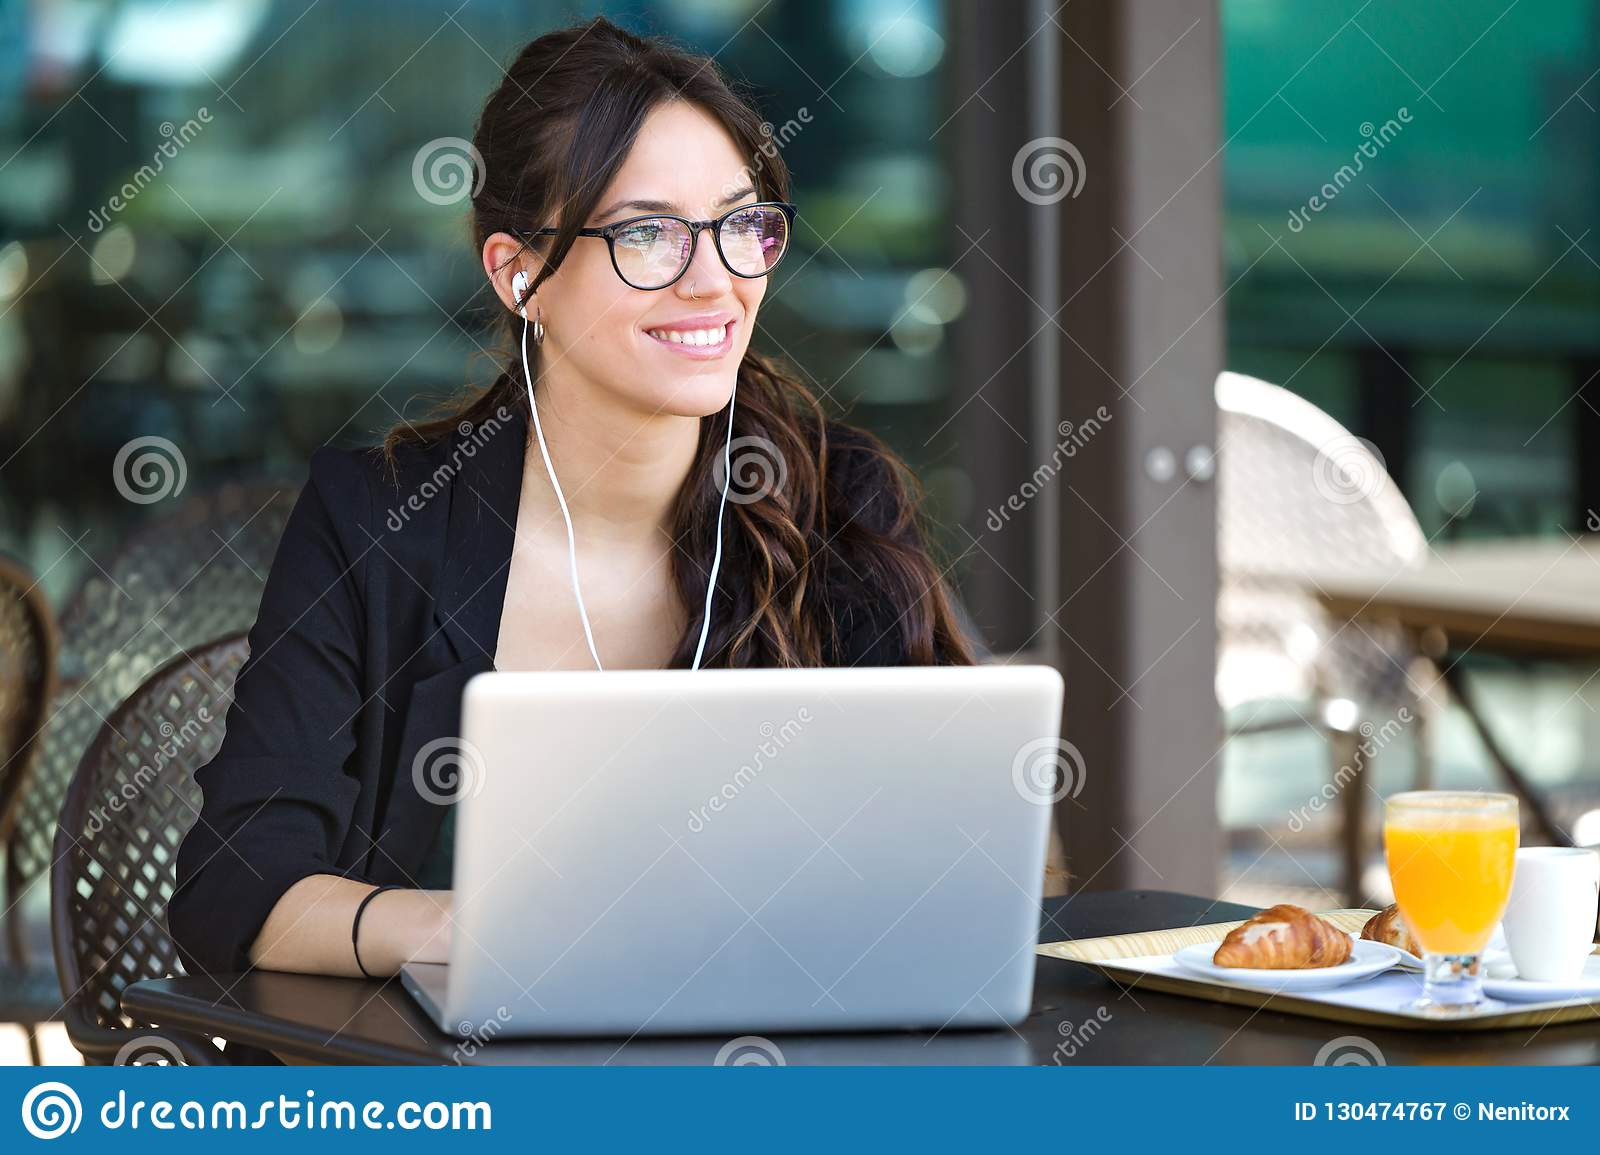 Beautiful young woman looking sideways while working with her laptop in a coffee shop.